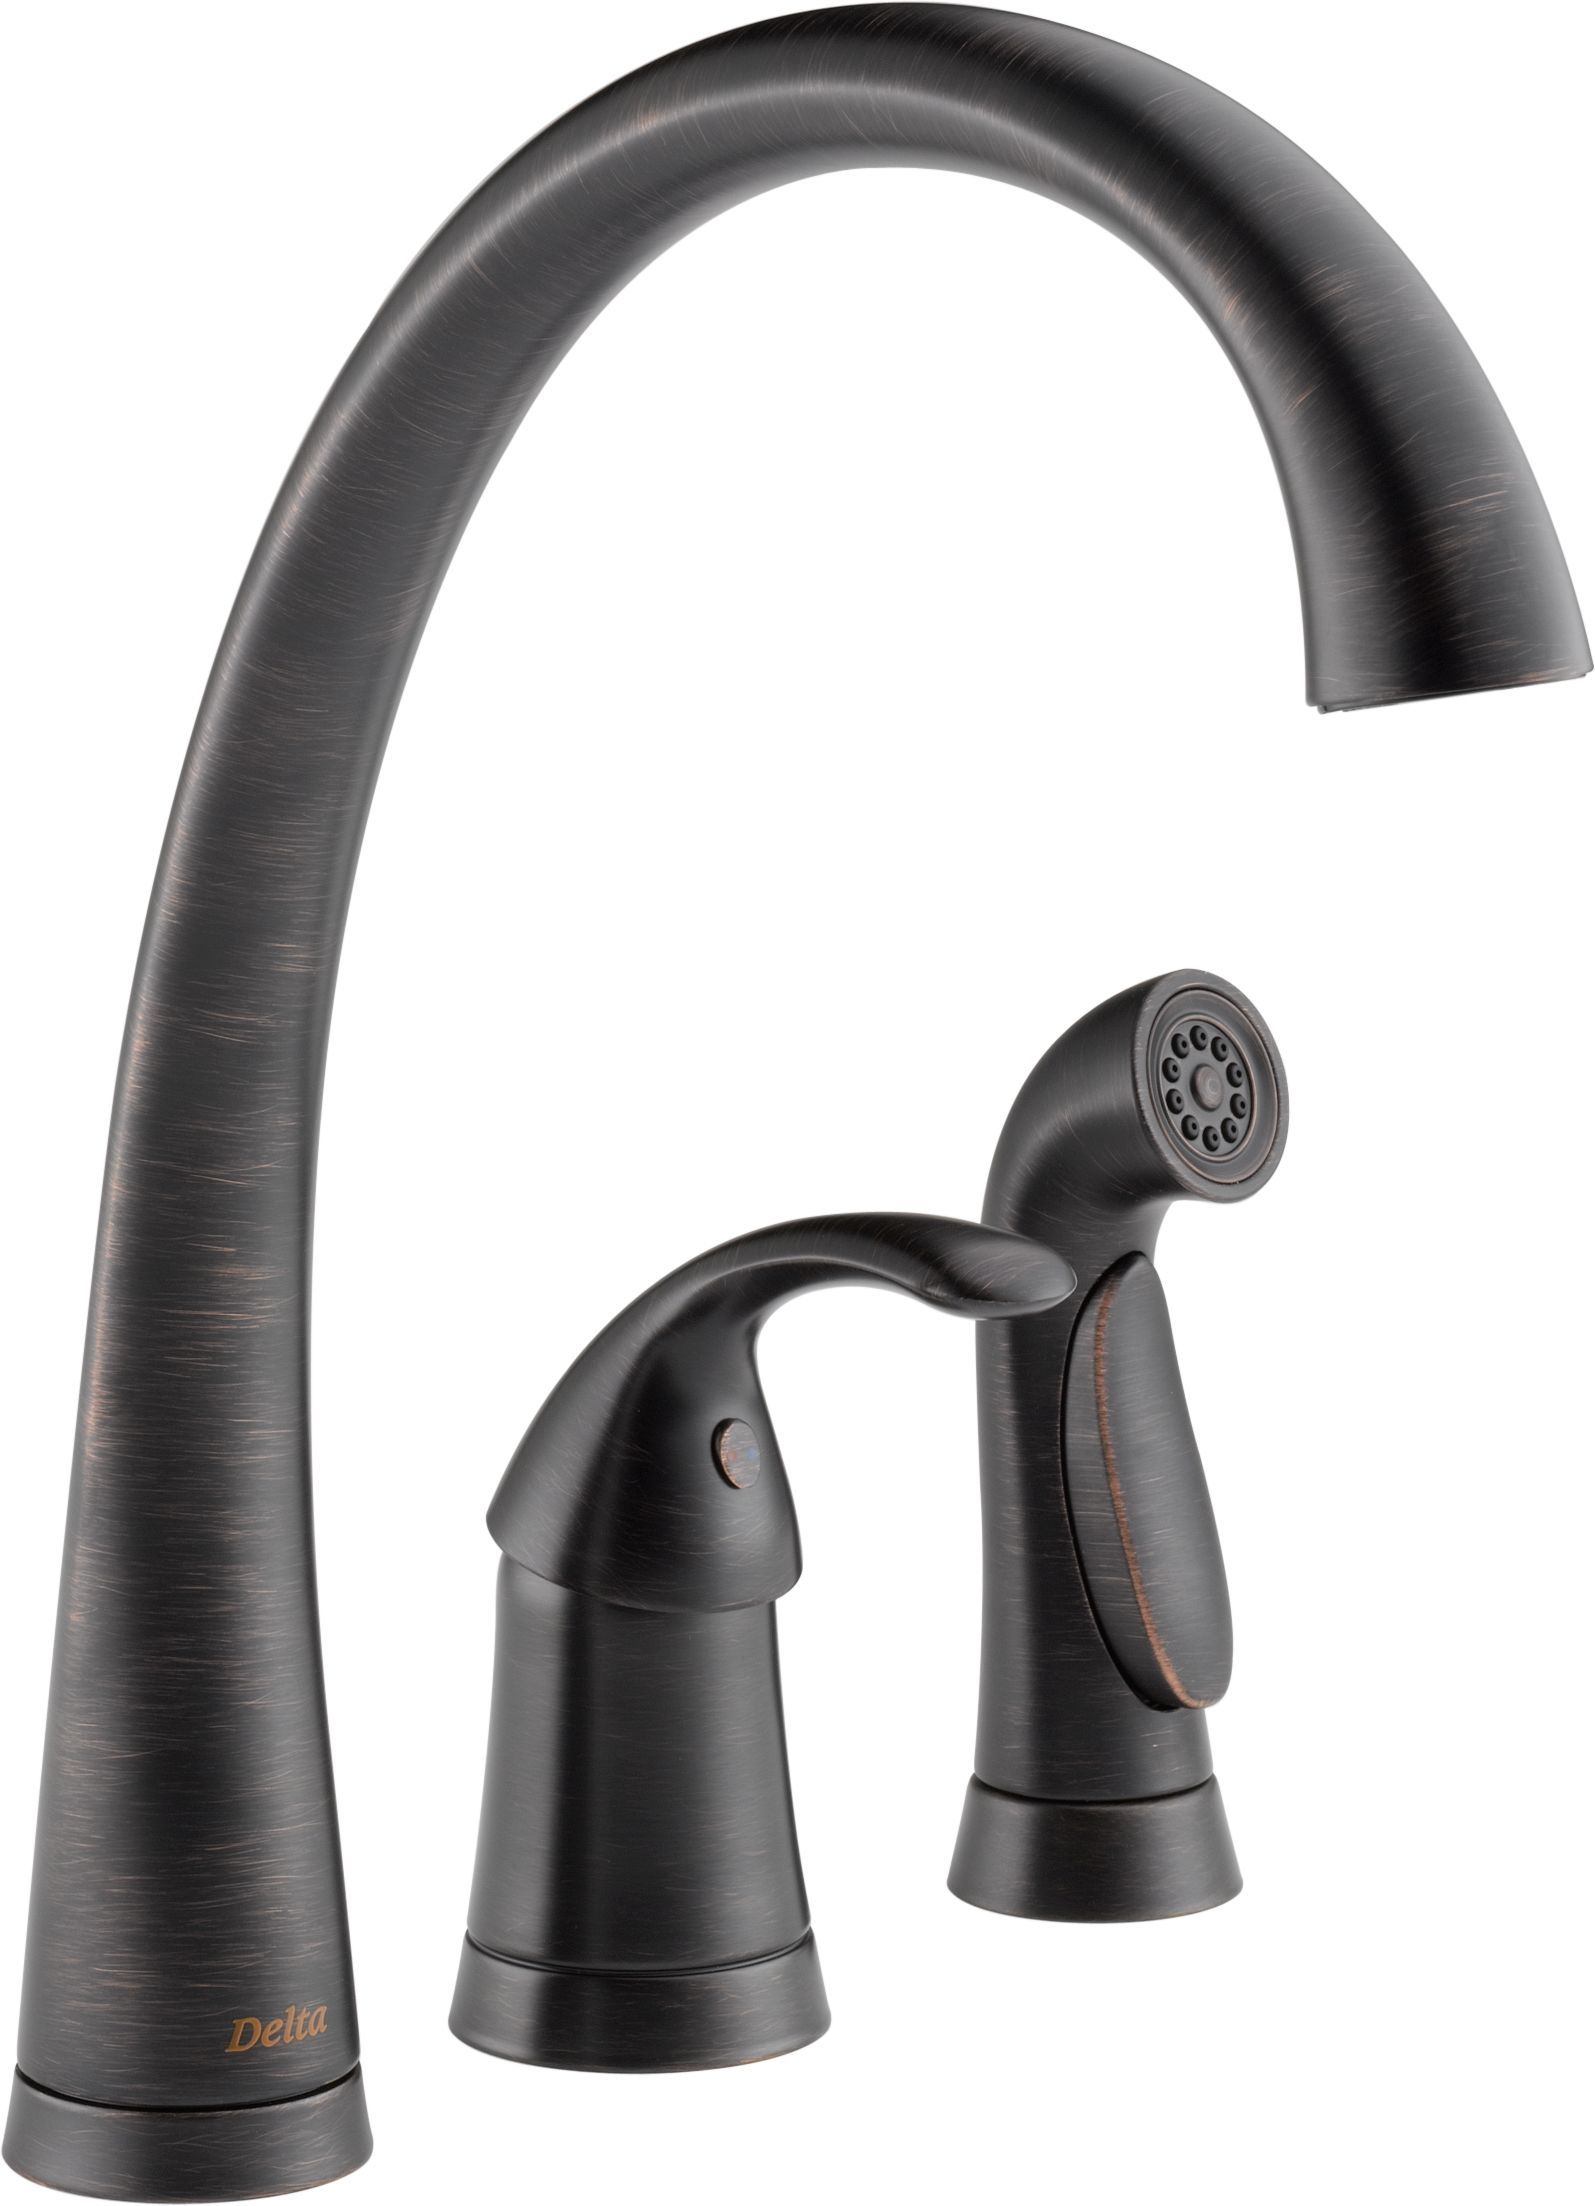 Delta 4380 Rb Dst Venetian Bronze Pilar Kitchen Faucet With Side